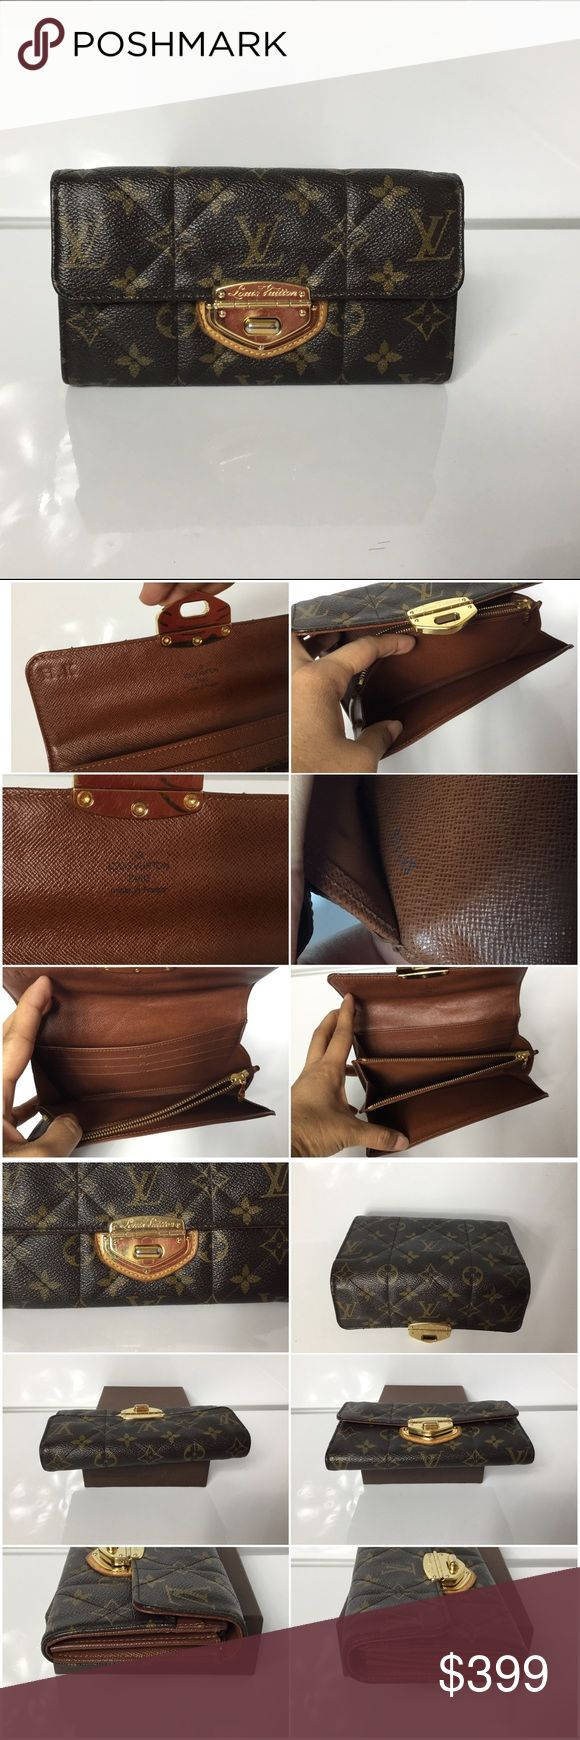 100% Authentic Louis Vuitton  Etoile Sarah Wallet 💥PRICE FIRM 💥 100% Authentic Louis Vuitton Monogram Etoile Sarah Wallet.. Pre-Owned in very good used condition. Very clean inside. Outside has crack ( see pictures) and sign of wear.. . Has initial stamped inside. MADE IN FRANCE DATE CODE SP1103 ( 10 weeks of 2013 )   Please check all the pictures.-In order to avoid unnecessary return. 100% authentic or your money back- no return sold as is-.. Louis Vuitton Bags Wallets